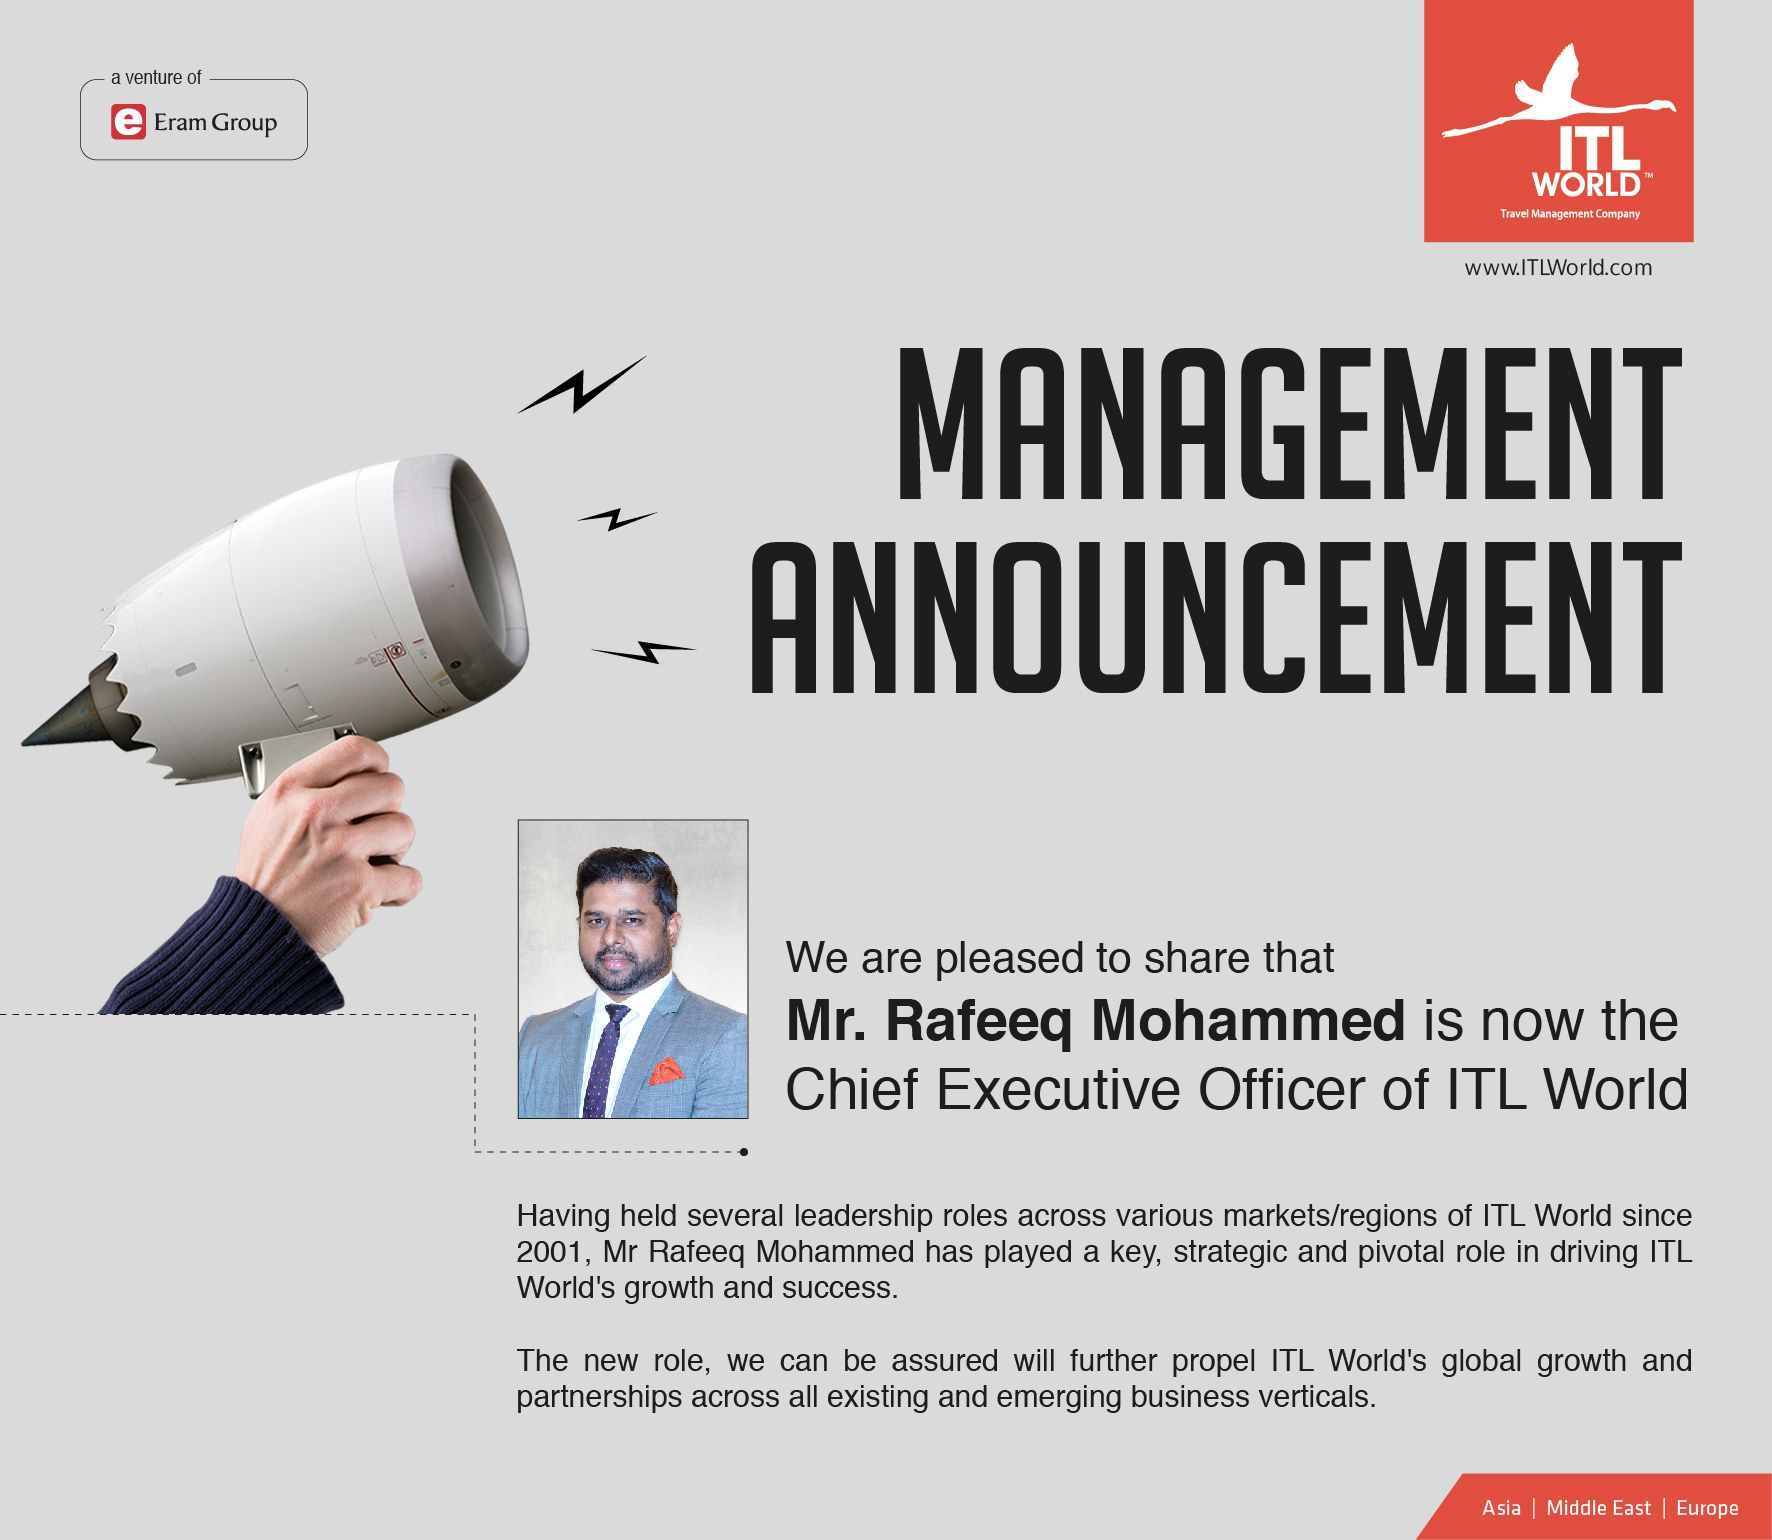 We are pleased to share that Mr  Rafeeq Mohammed is now the Chief